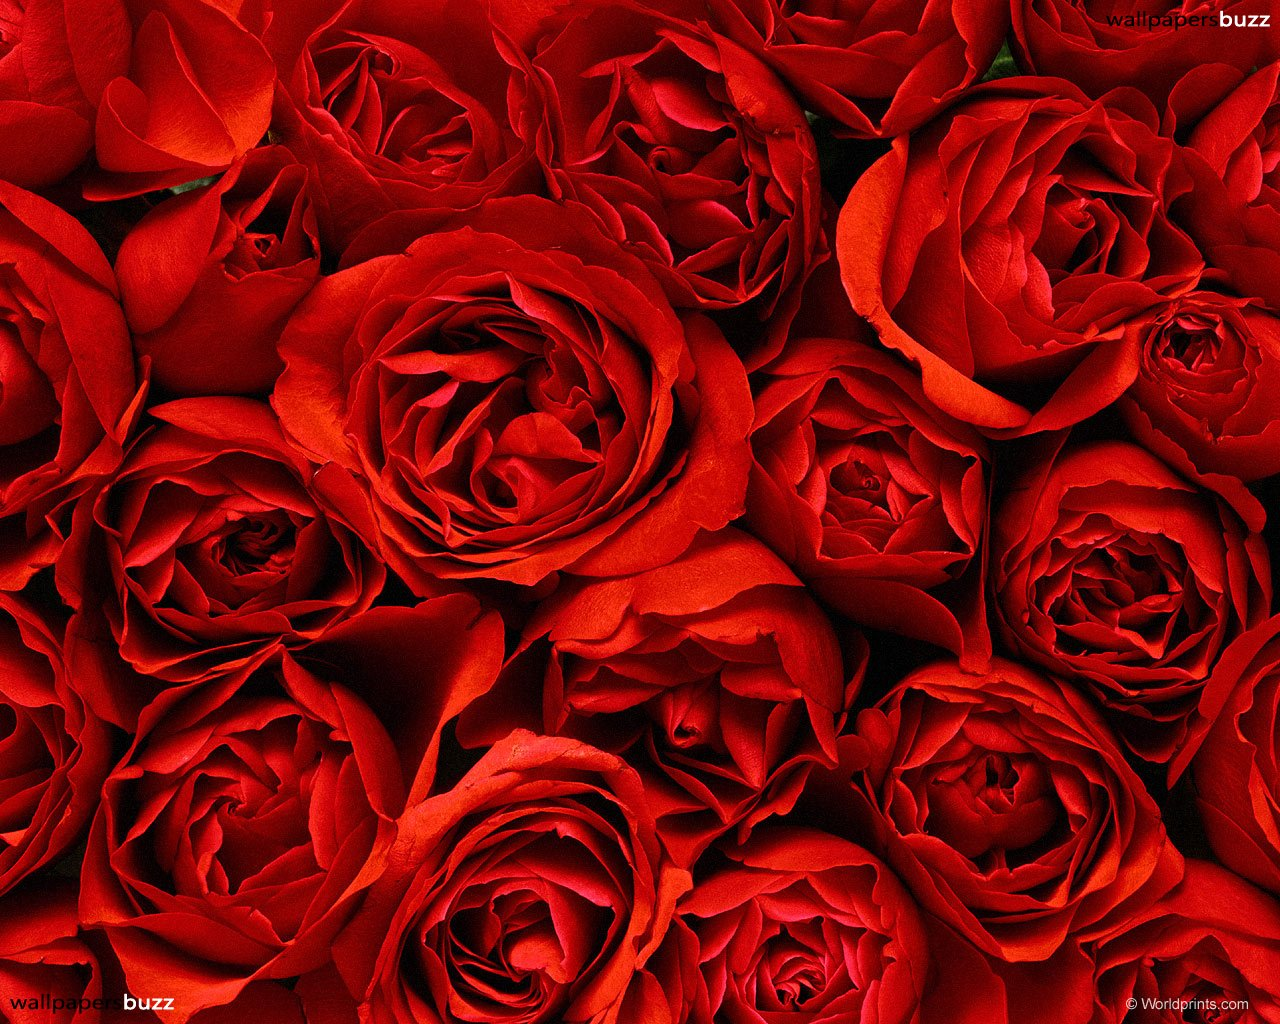 Dagens ros renvilja - Red rose flower hd images ...